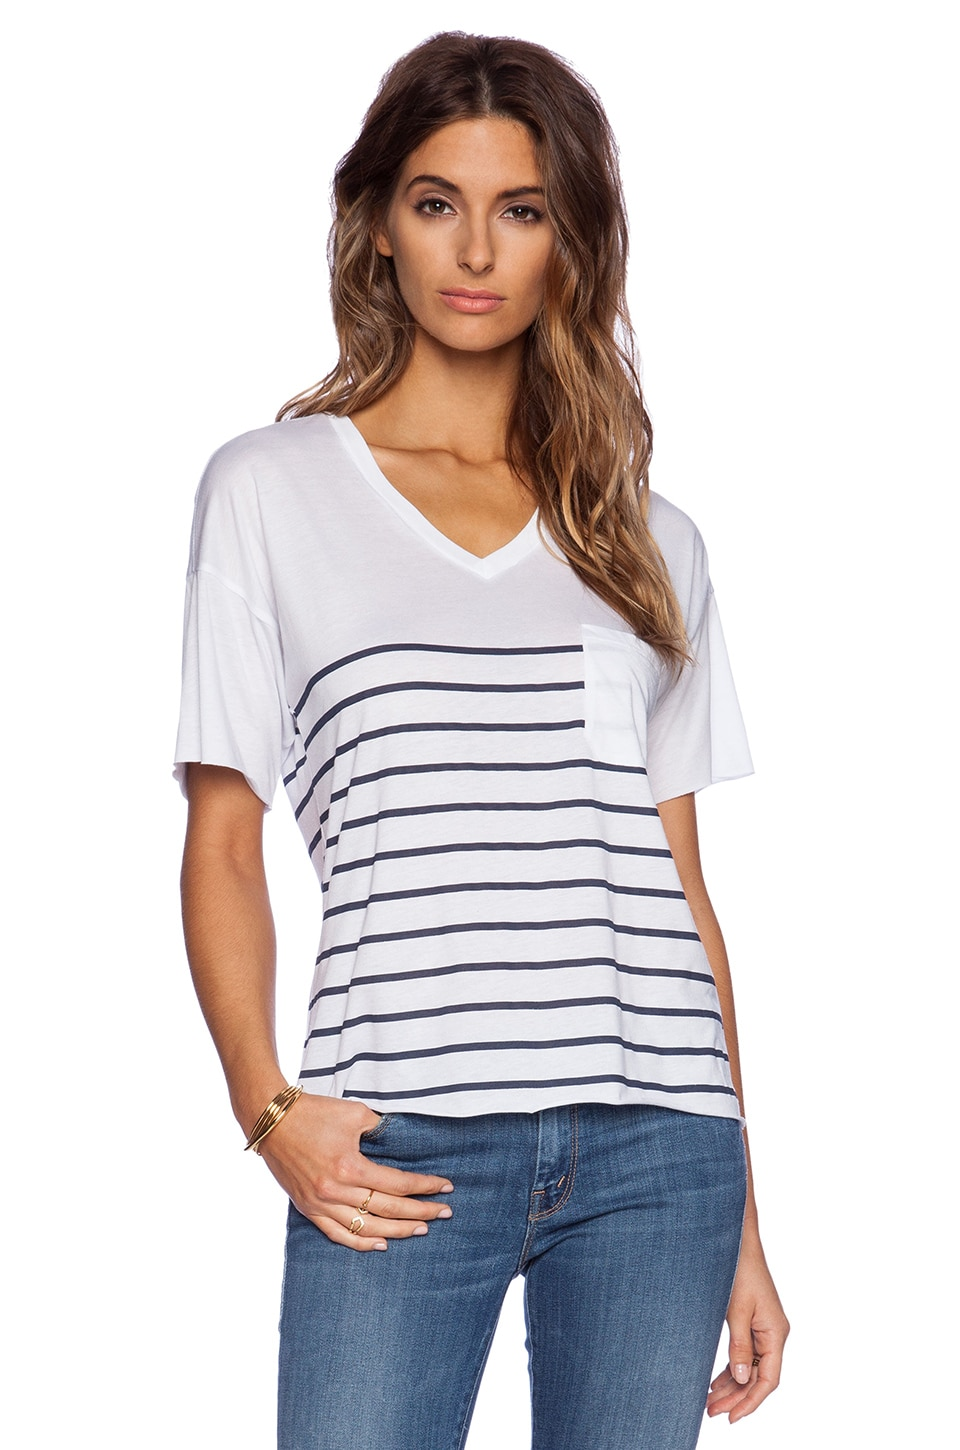 Zoe Karssen Stripes Tee in Optical White